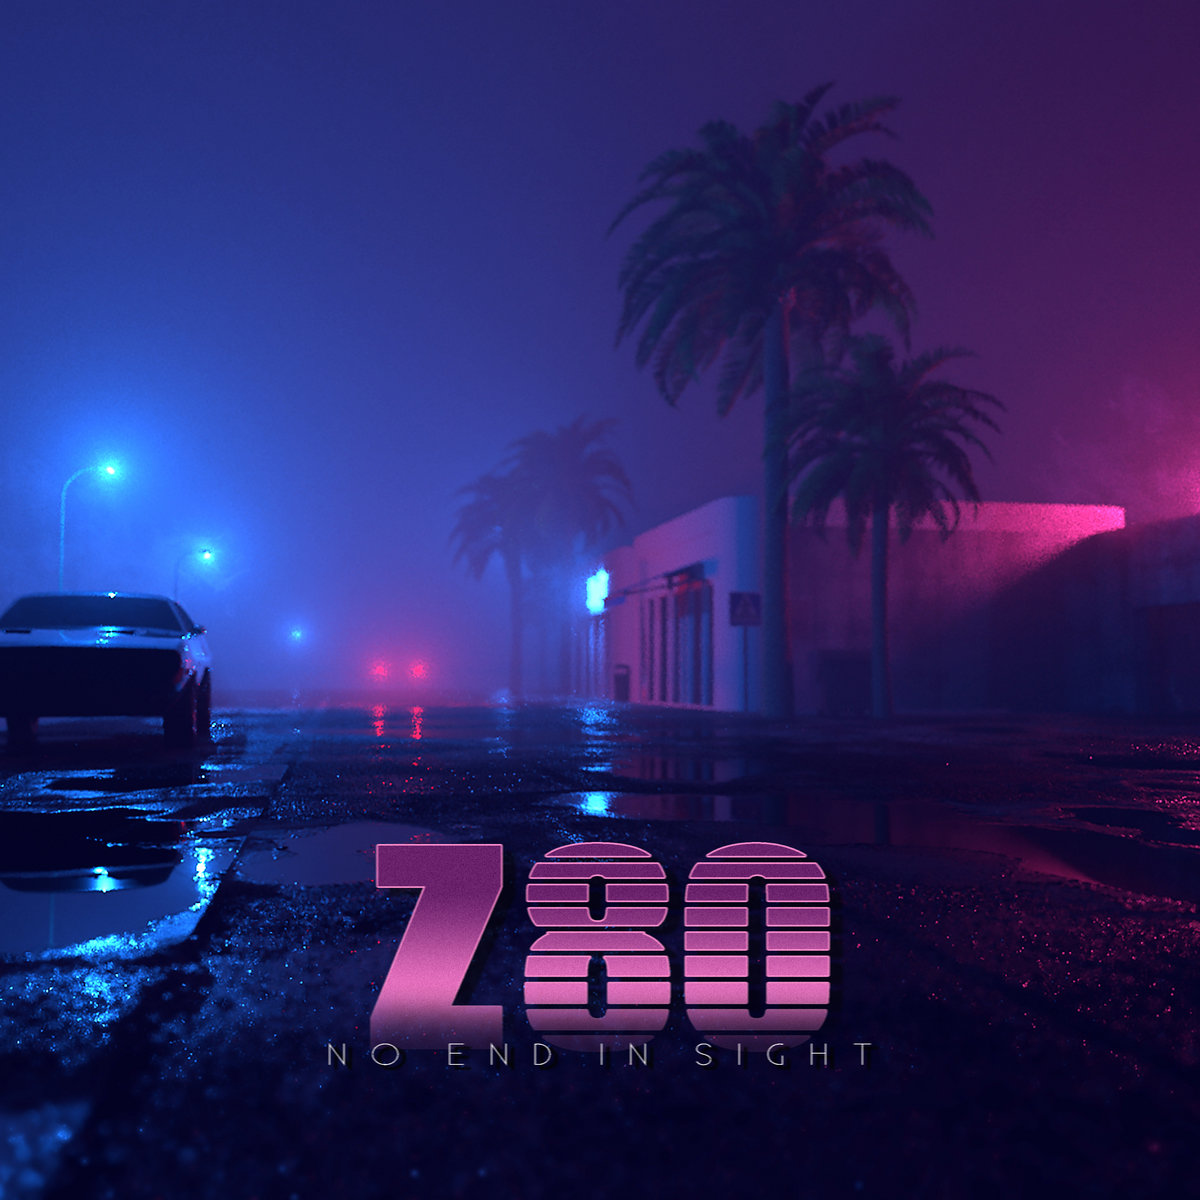 No End In Sight | Z80